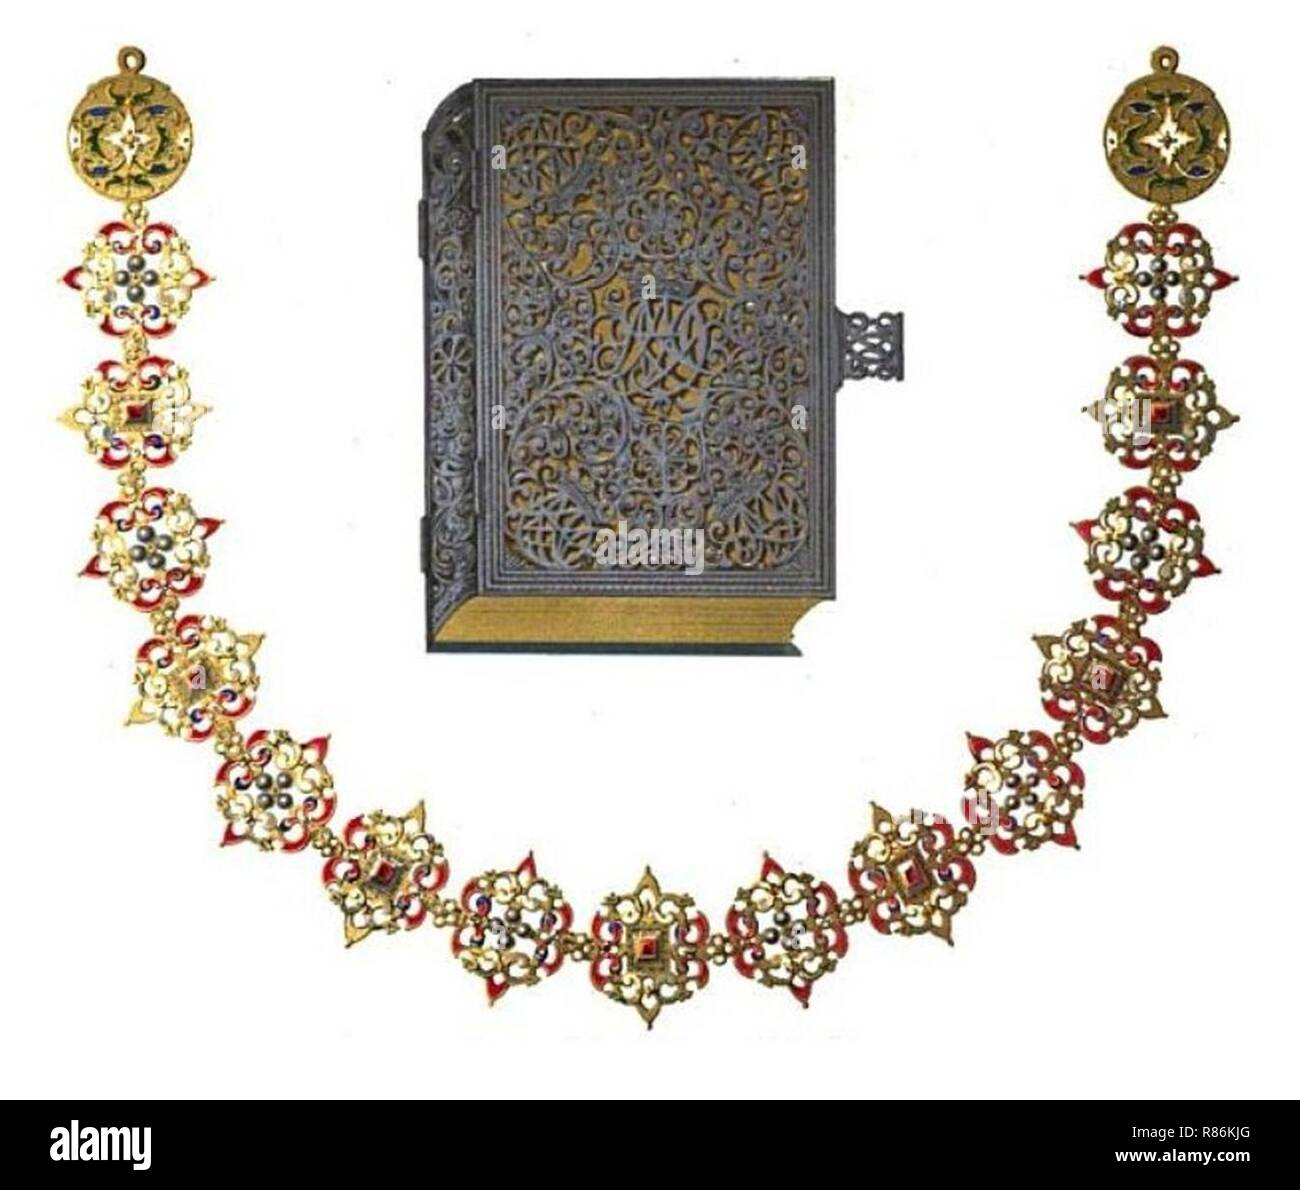 Canonical Hours and a necklace. - Stock Image